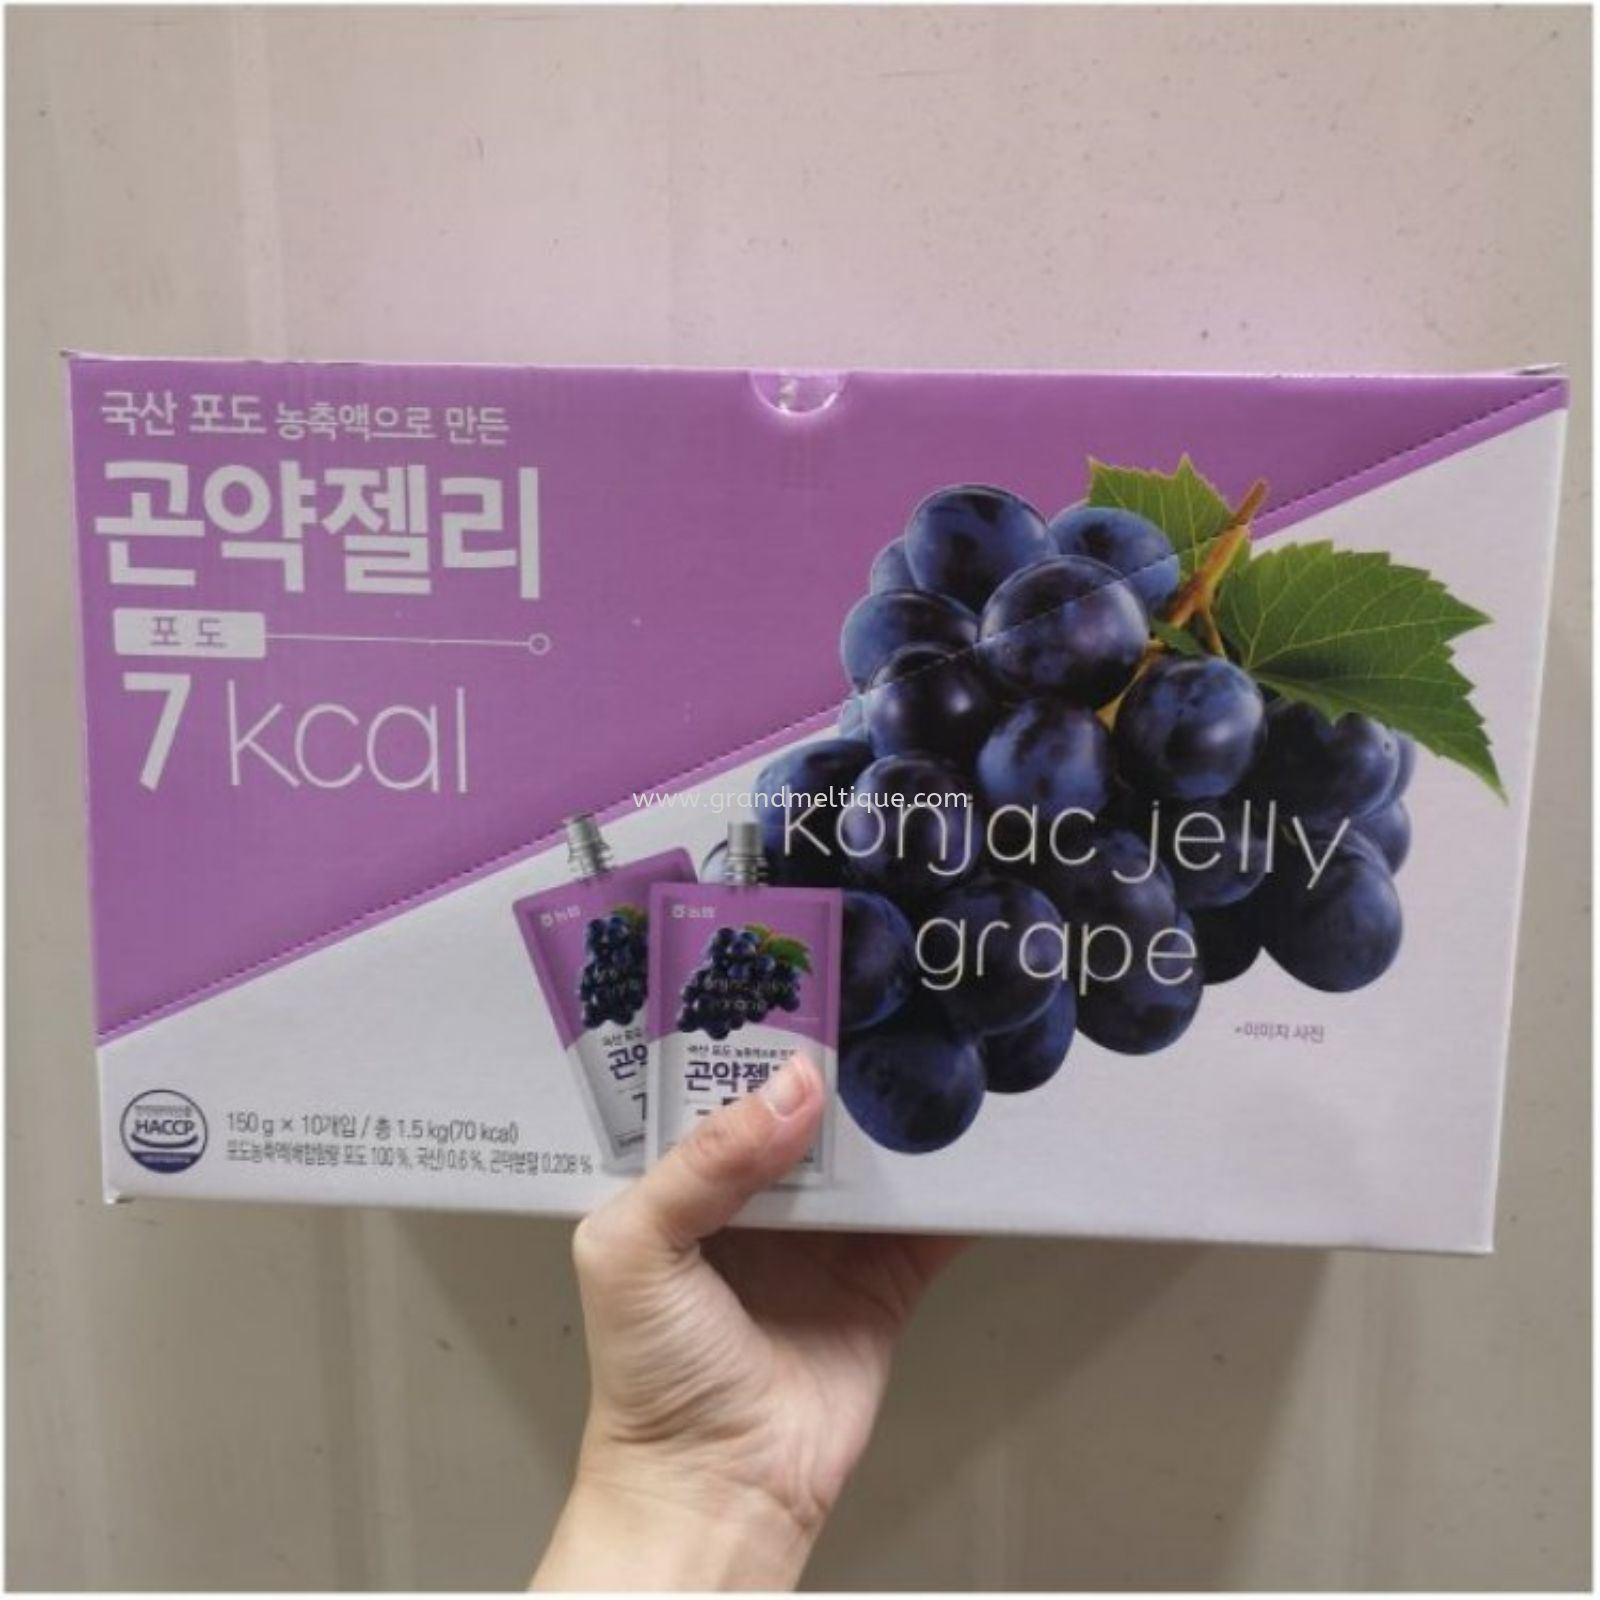 NONGHYUP KONJAC JELLY GRAPE 农业葡萄 150G X 10 PER 3 OUTER